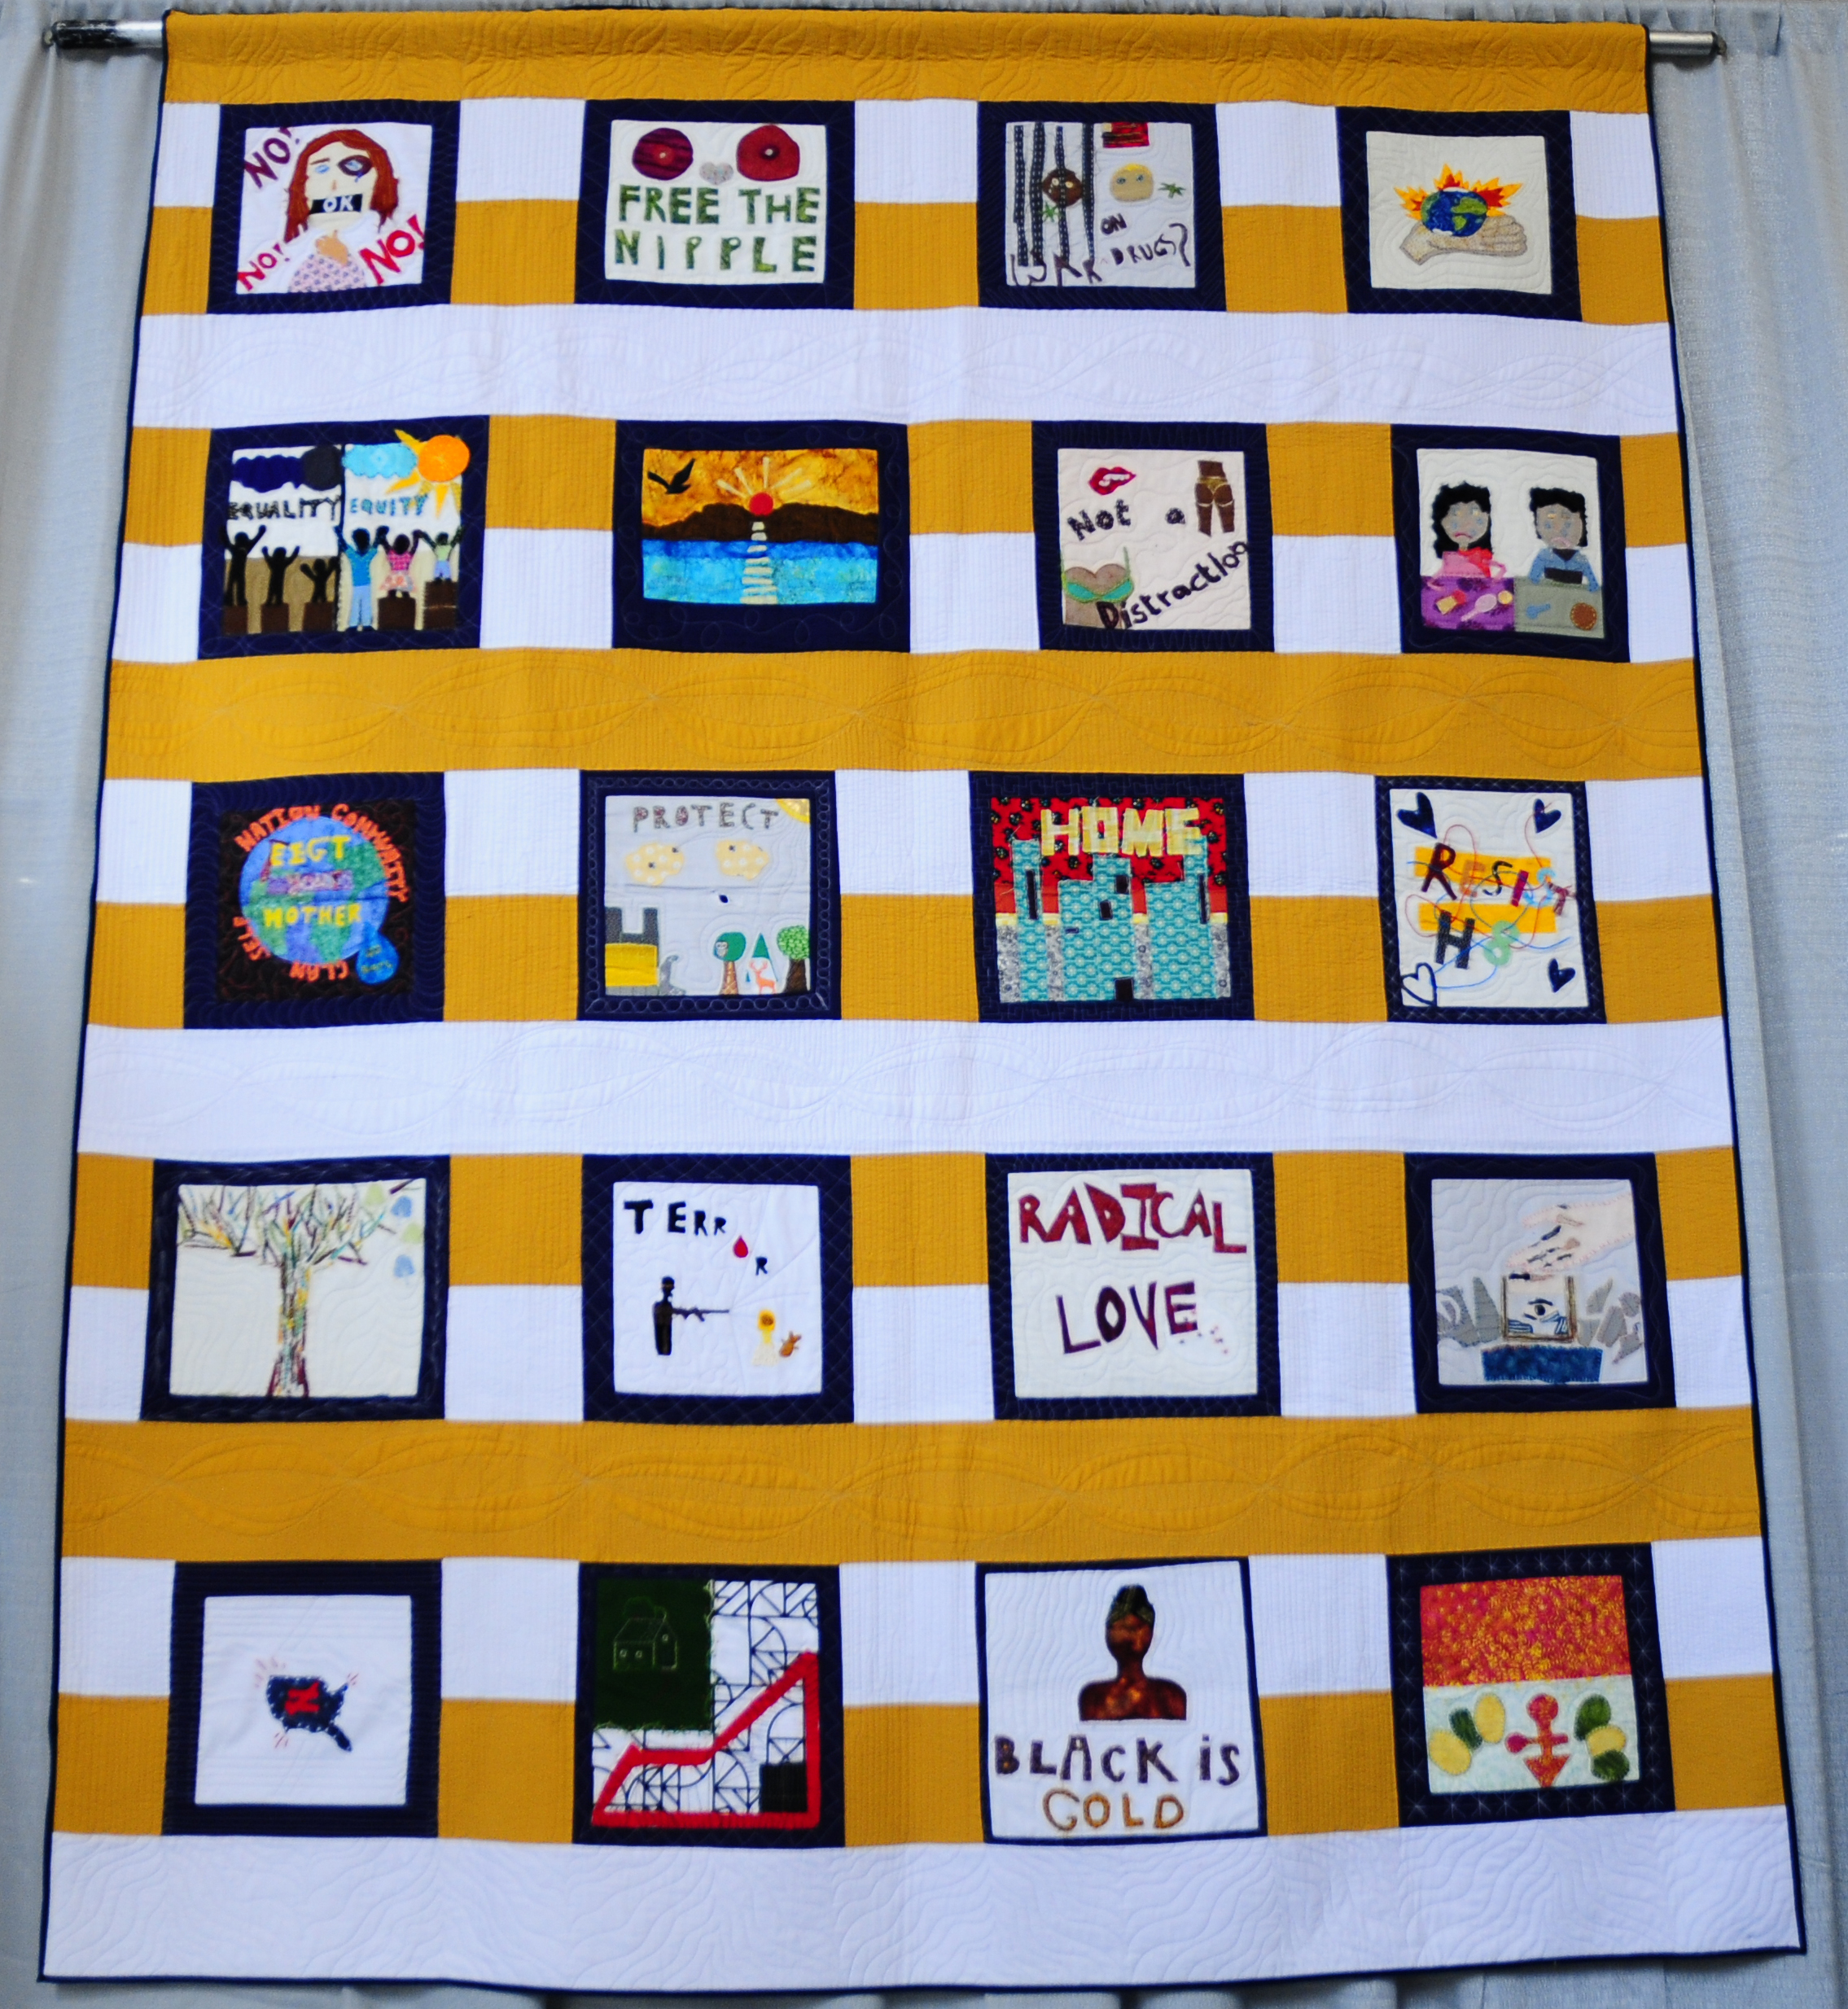 Social Justice Community Quilt by Social Justice Sewing Academy (Youth)